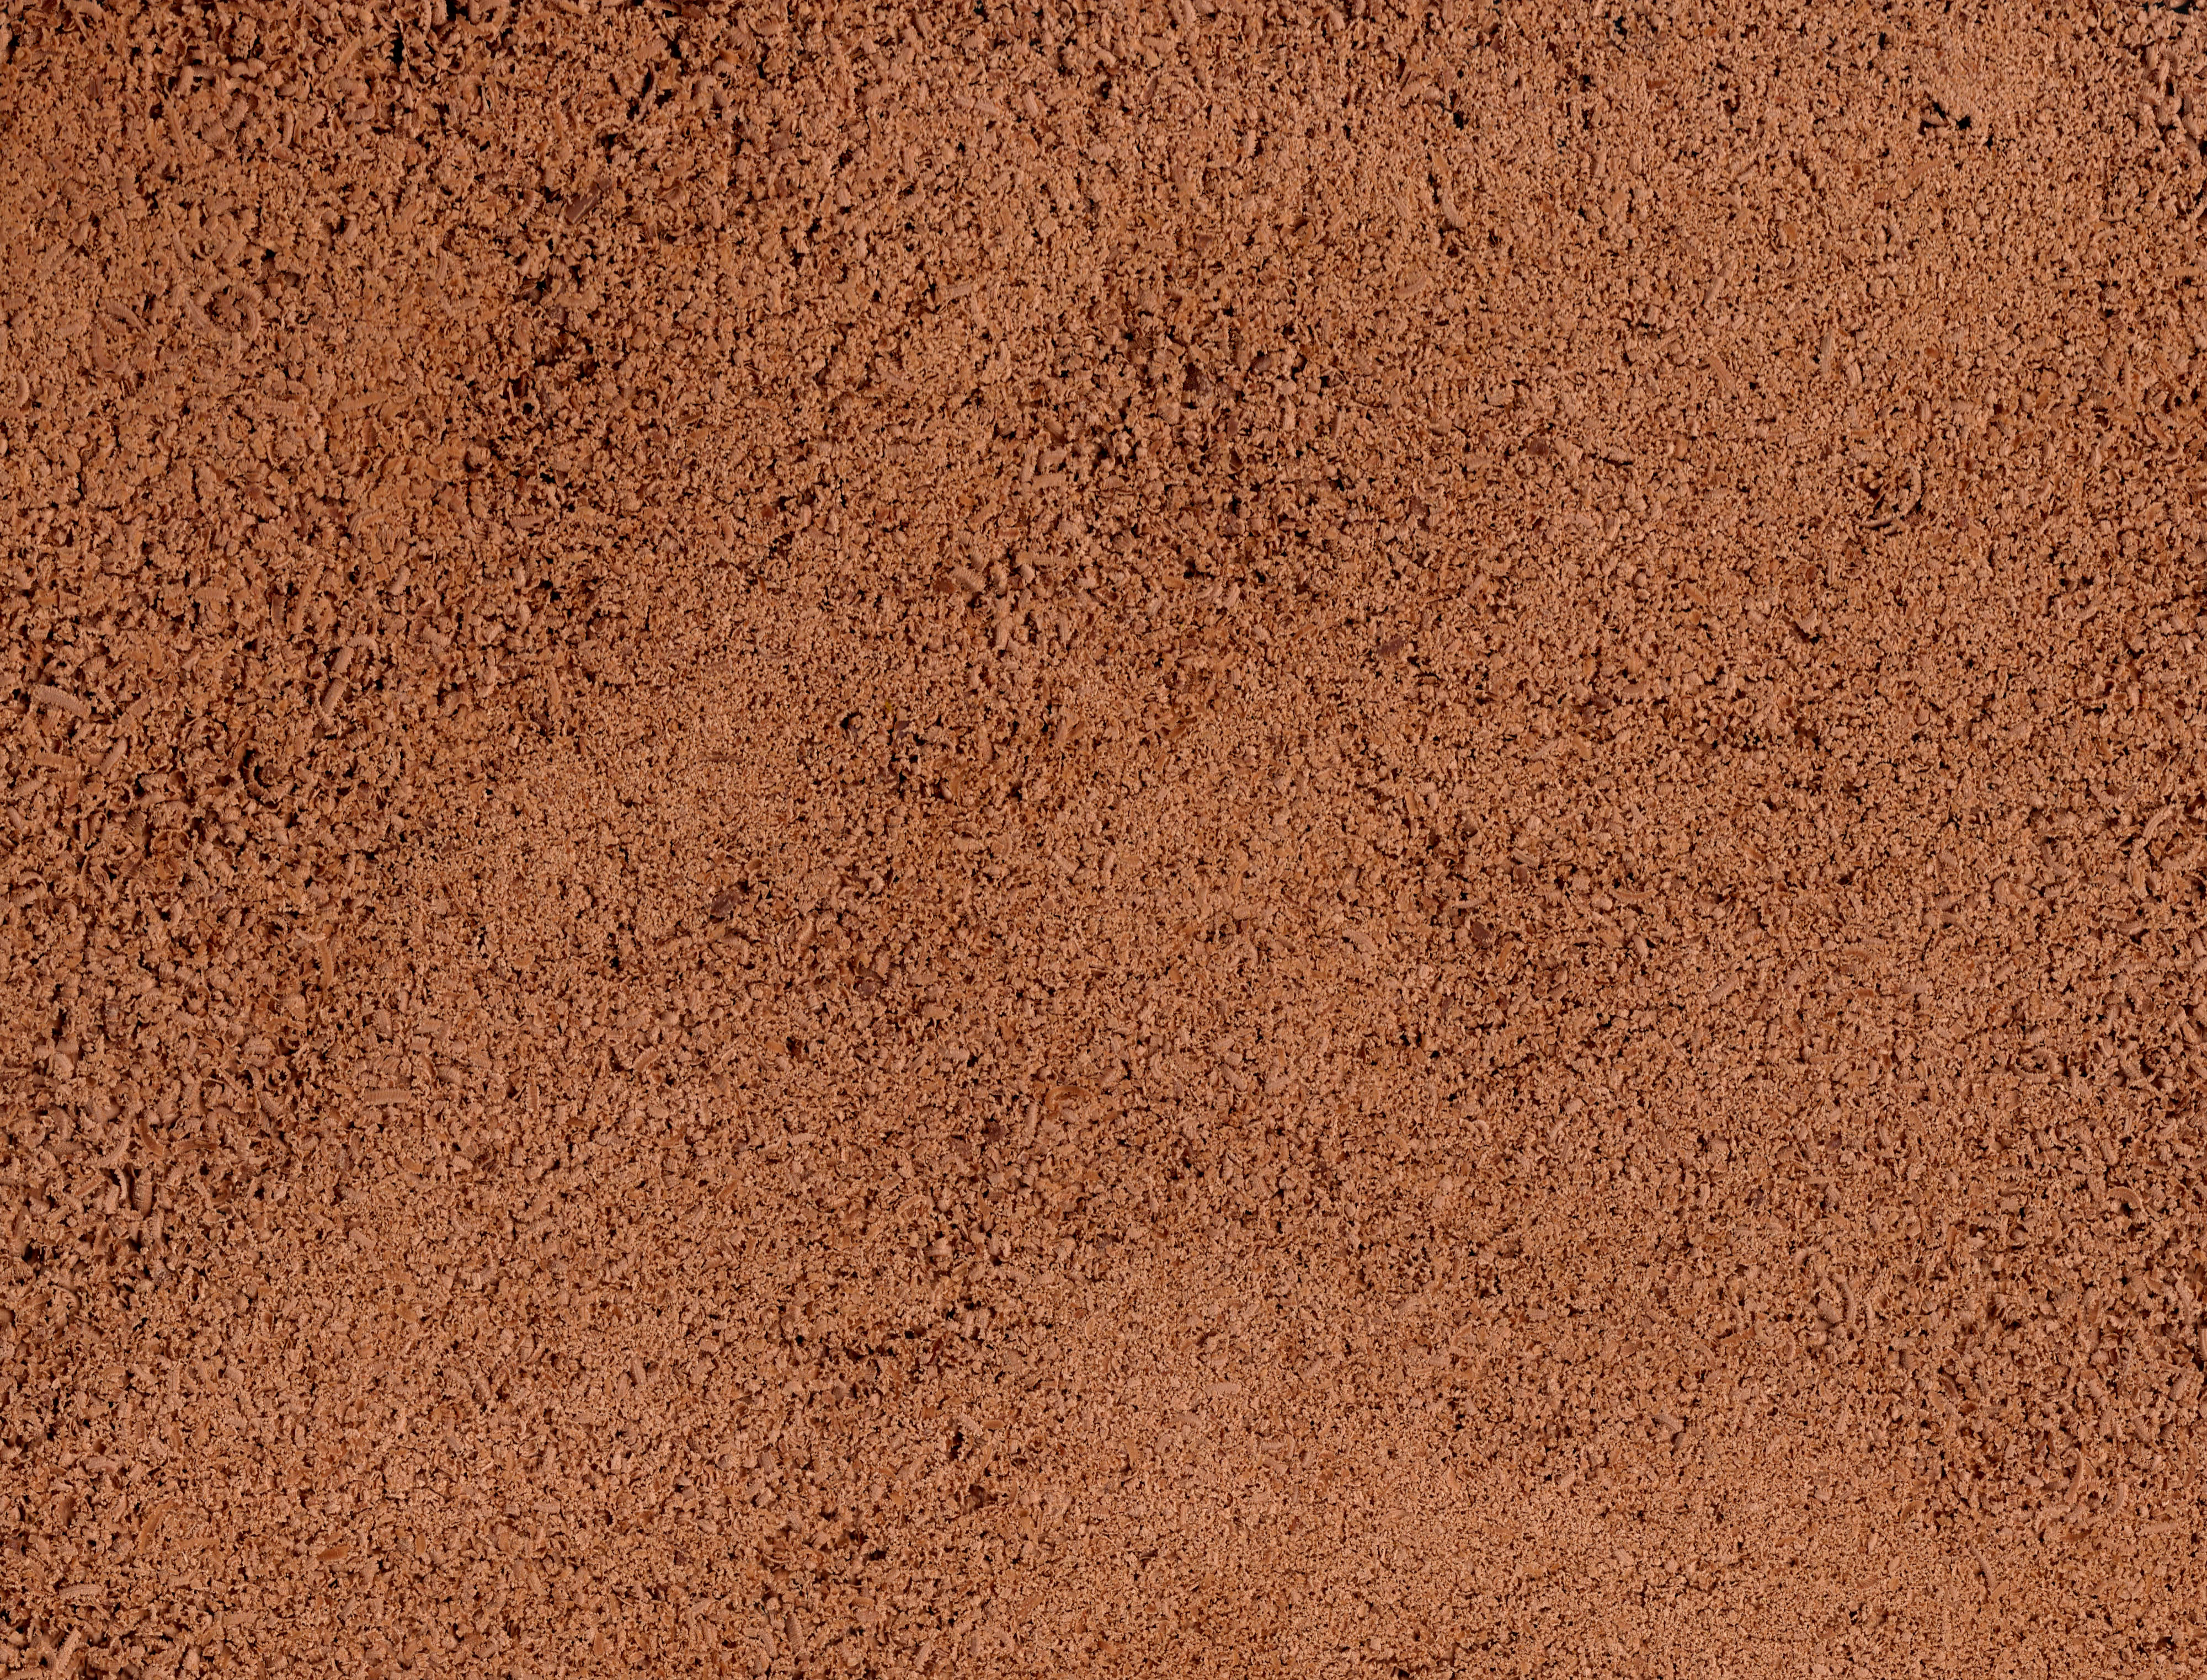 Grated Chocolate Texture (JPG)   OnlyGFX.com